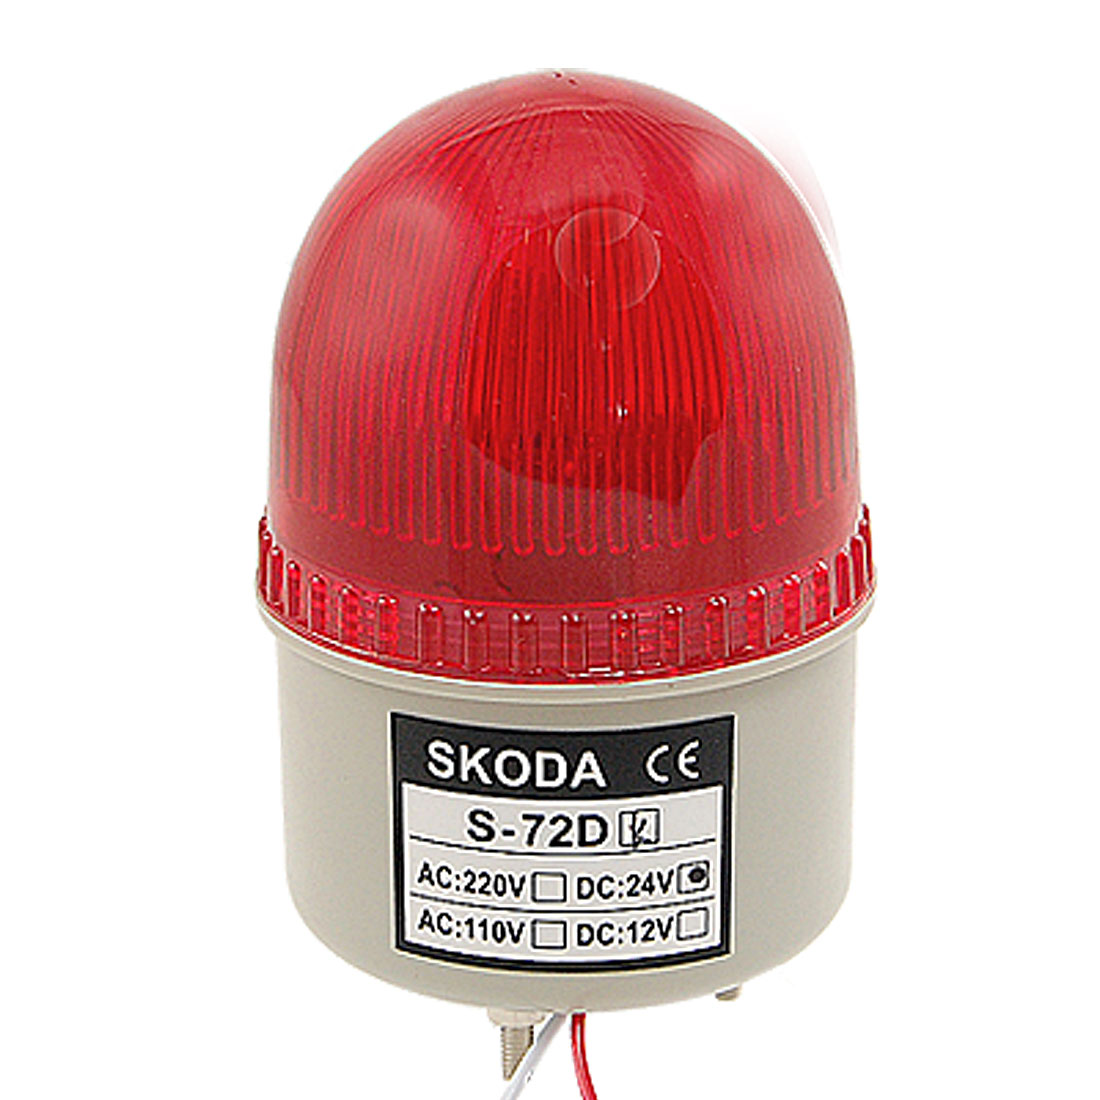 DC 24V Red LED Light Alarm Buzzer Industrial Safety Signal Lamp 90dB